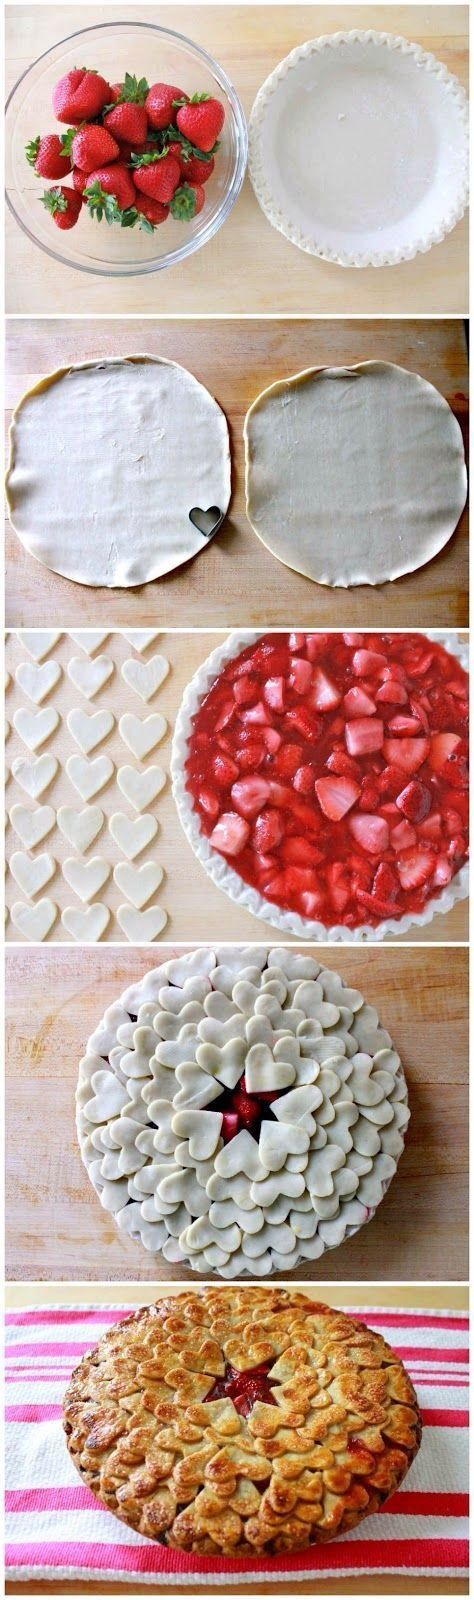 Heart Strawberry Pie ~ For more info... http://www.missbuttercup.com/food/recipes/strawberry-heart-pie/